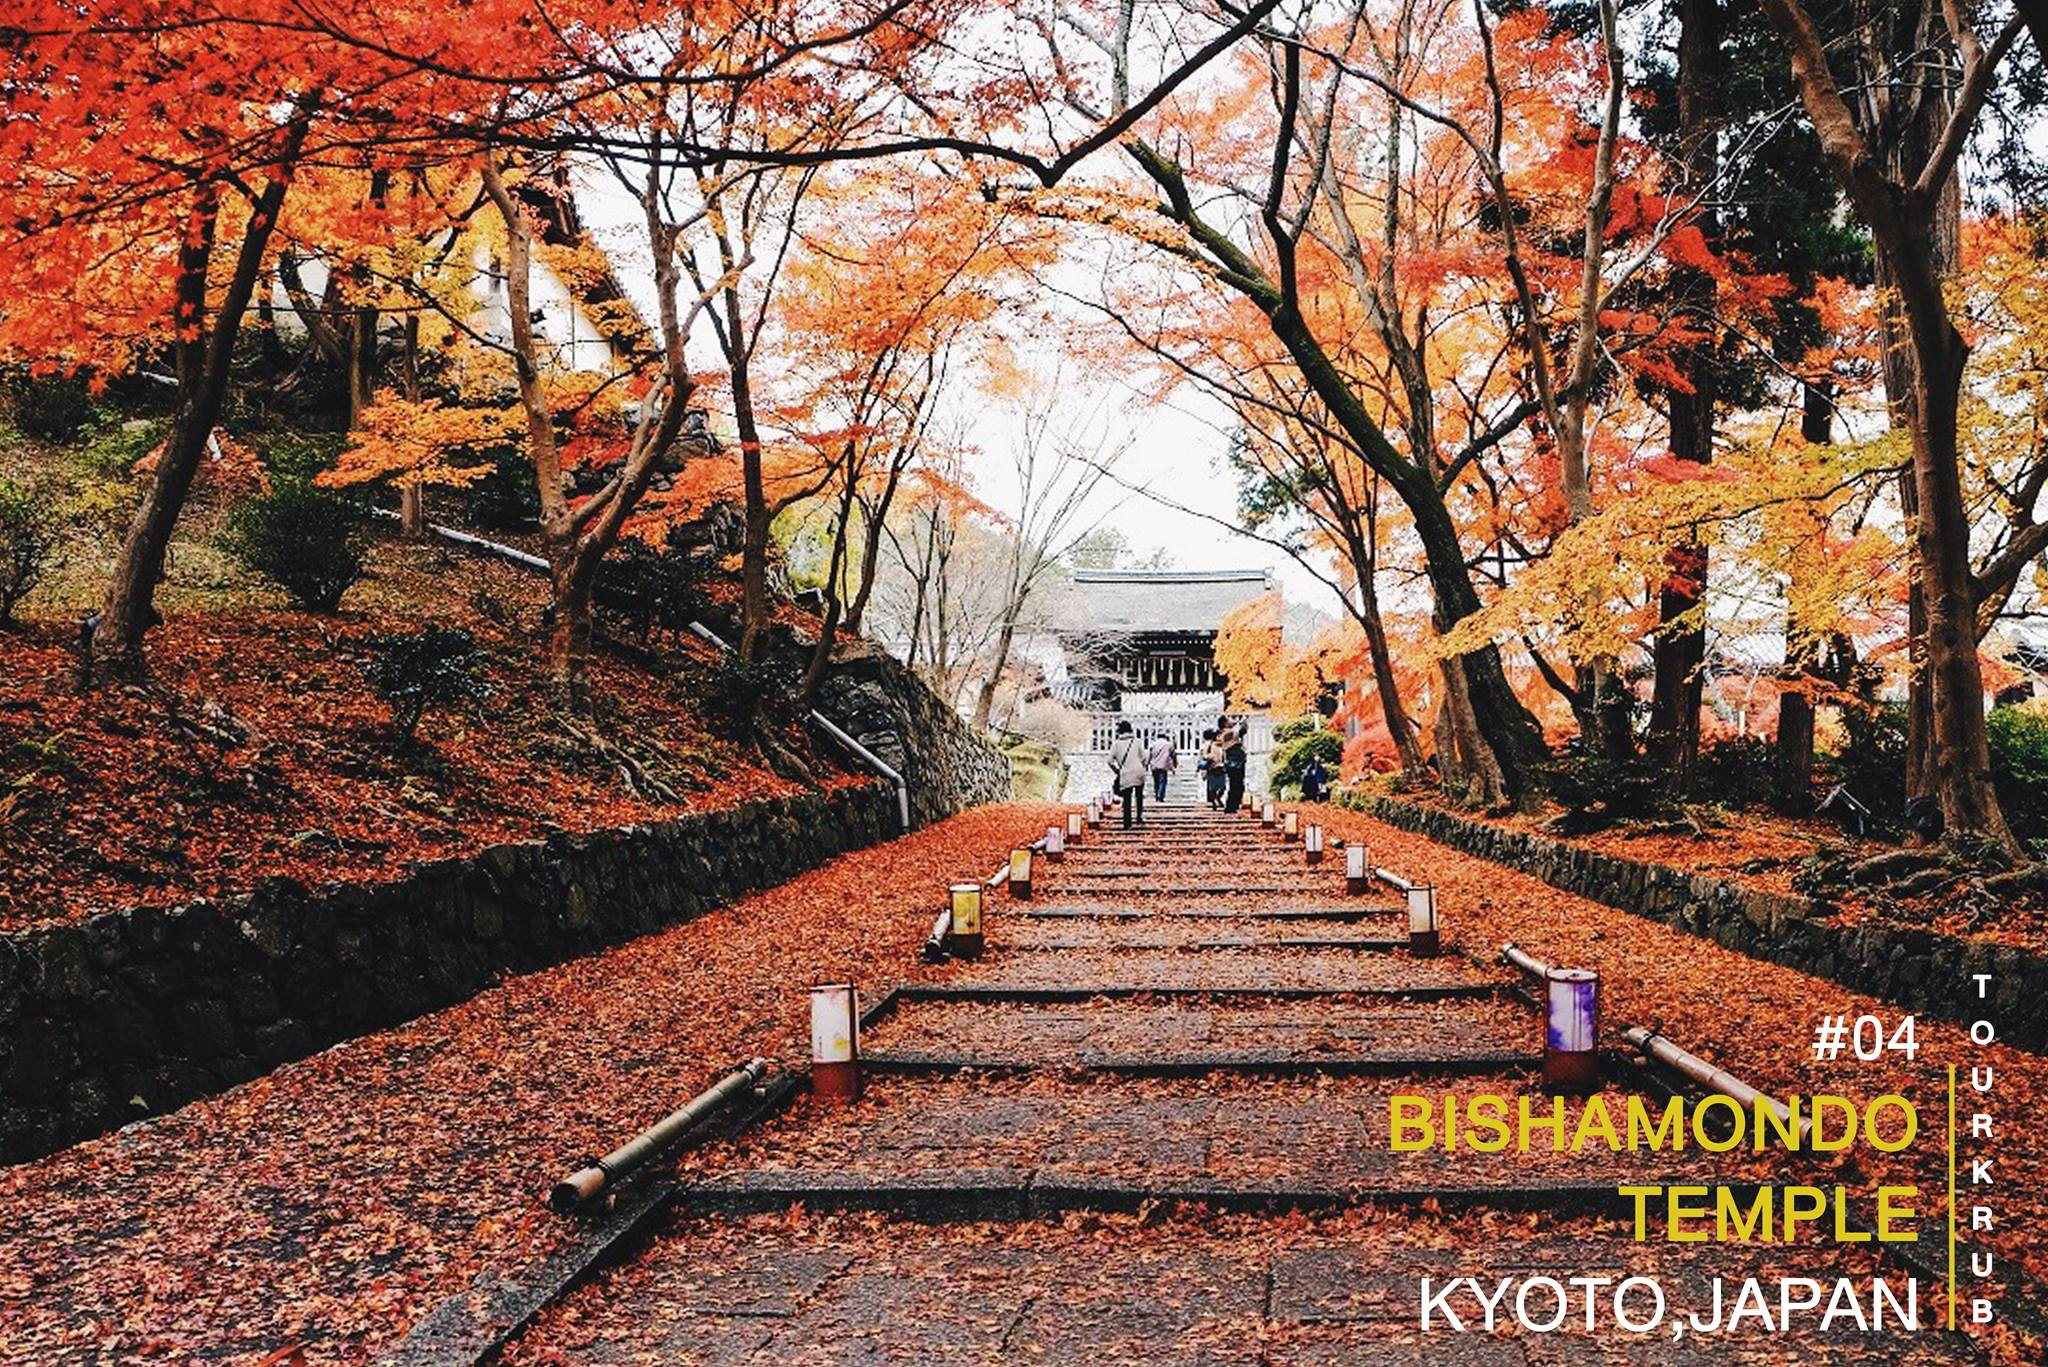 4.bishamon-do temple-Tourkrub